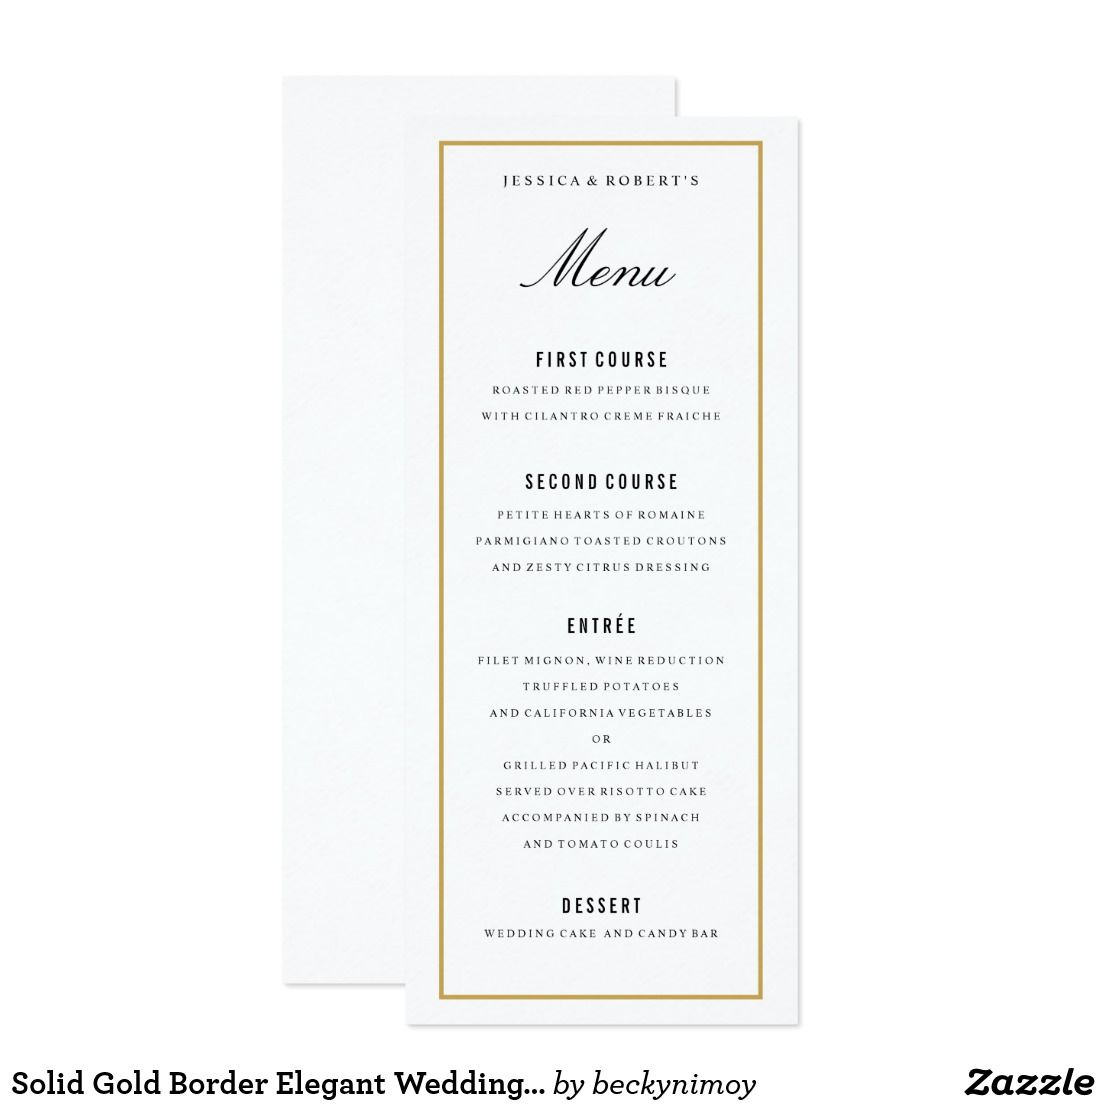 solid gold border elegant wedding menu card | menu cards, wedding